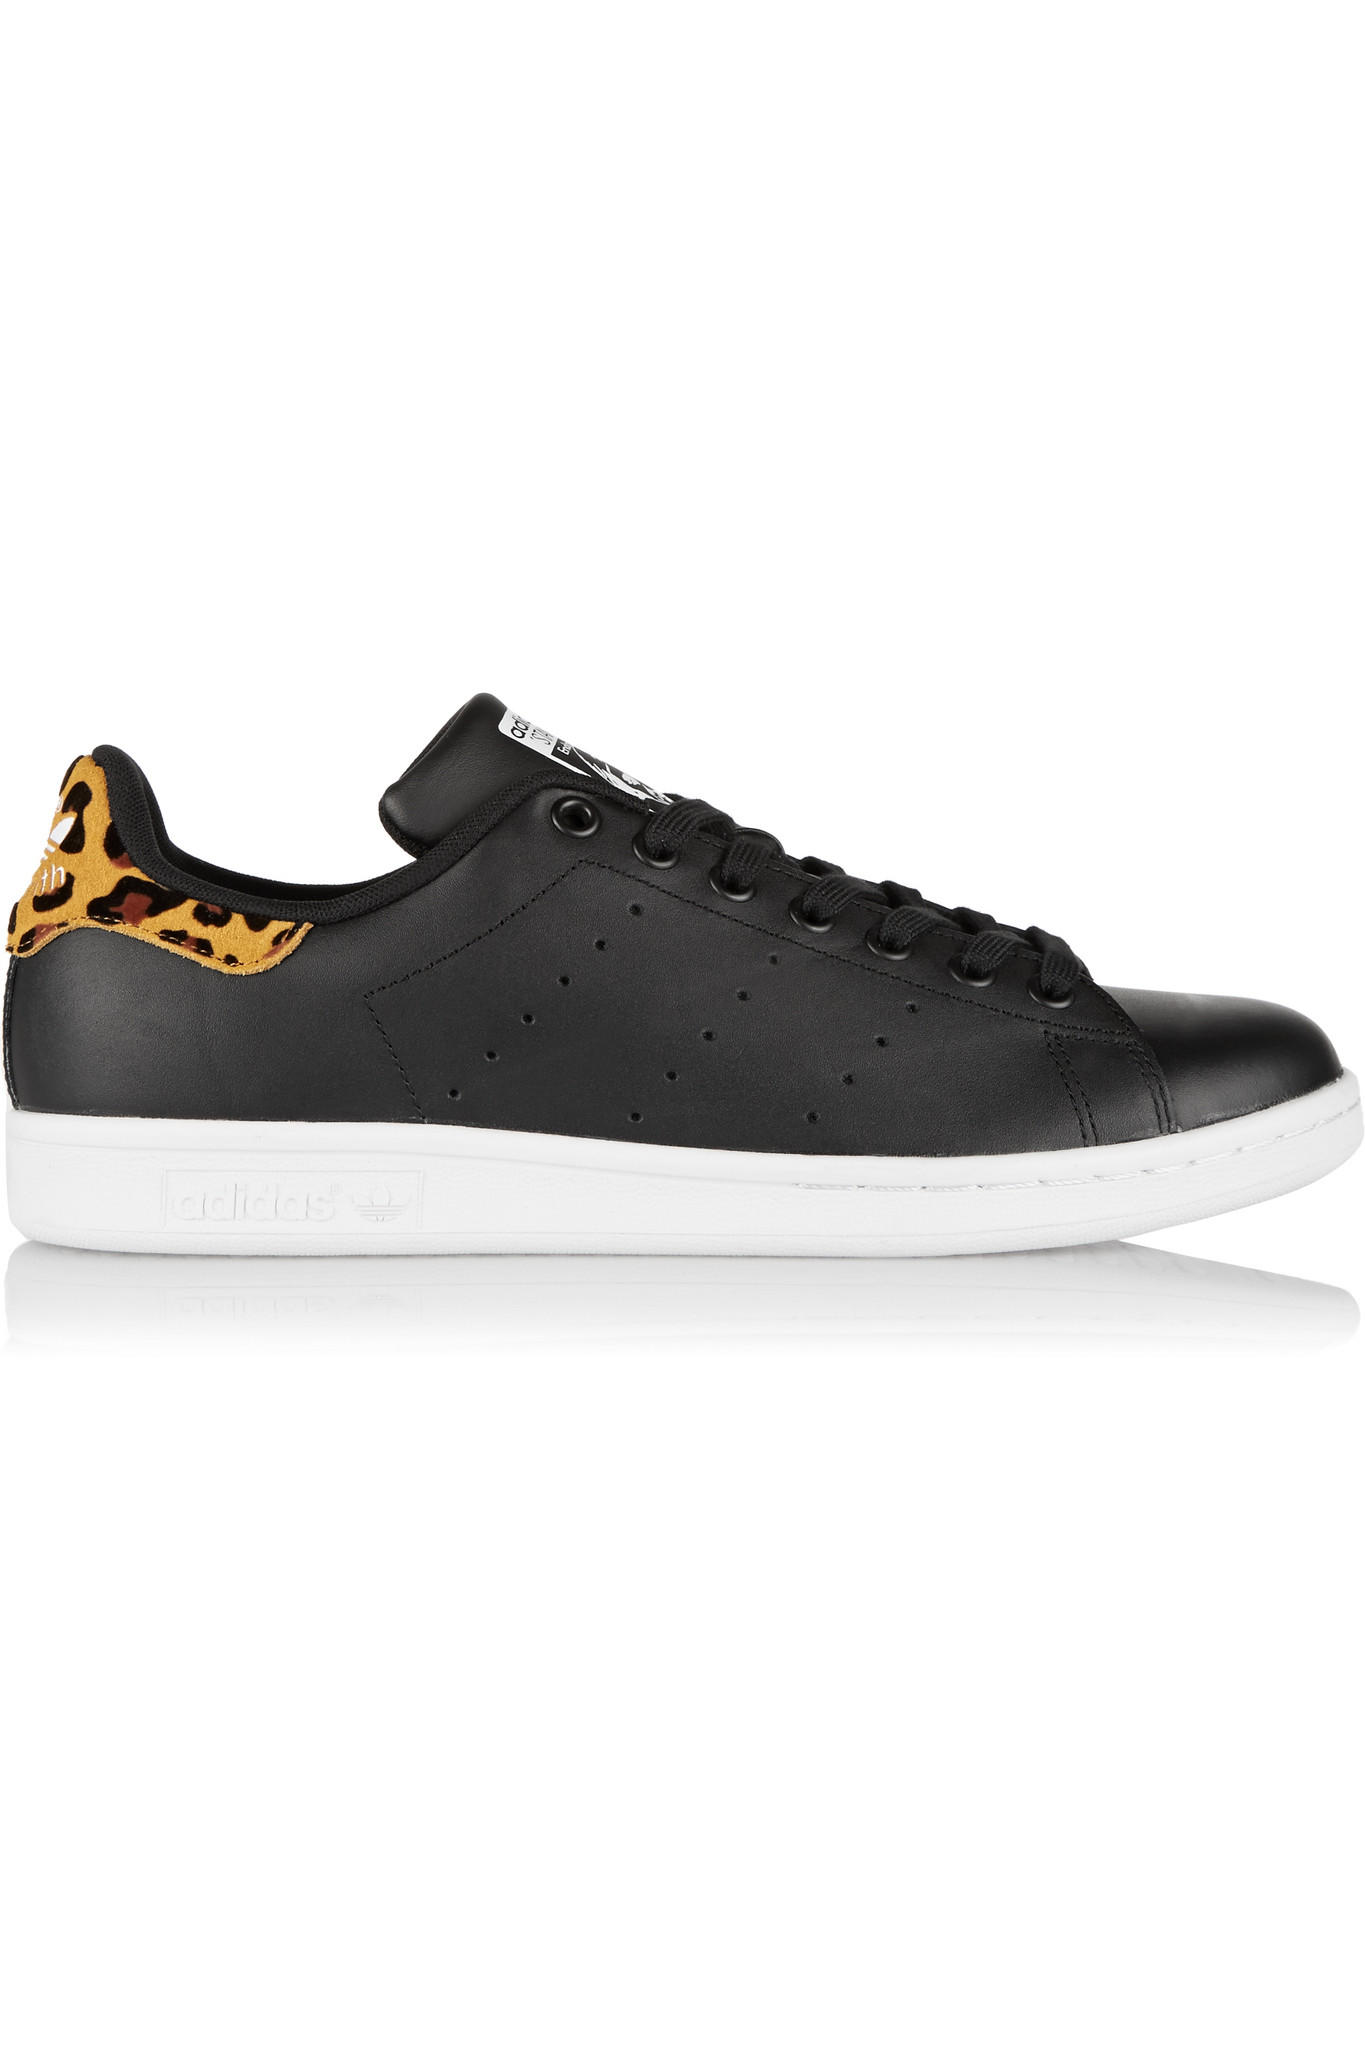 adidas Originals - Stan Smith leopard print-trimmed leather sneakers 6242d7e4a